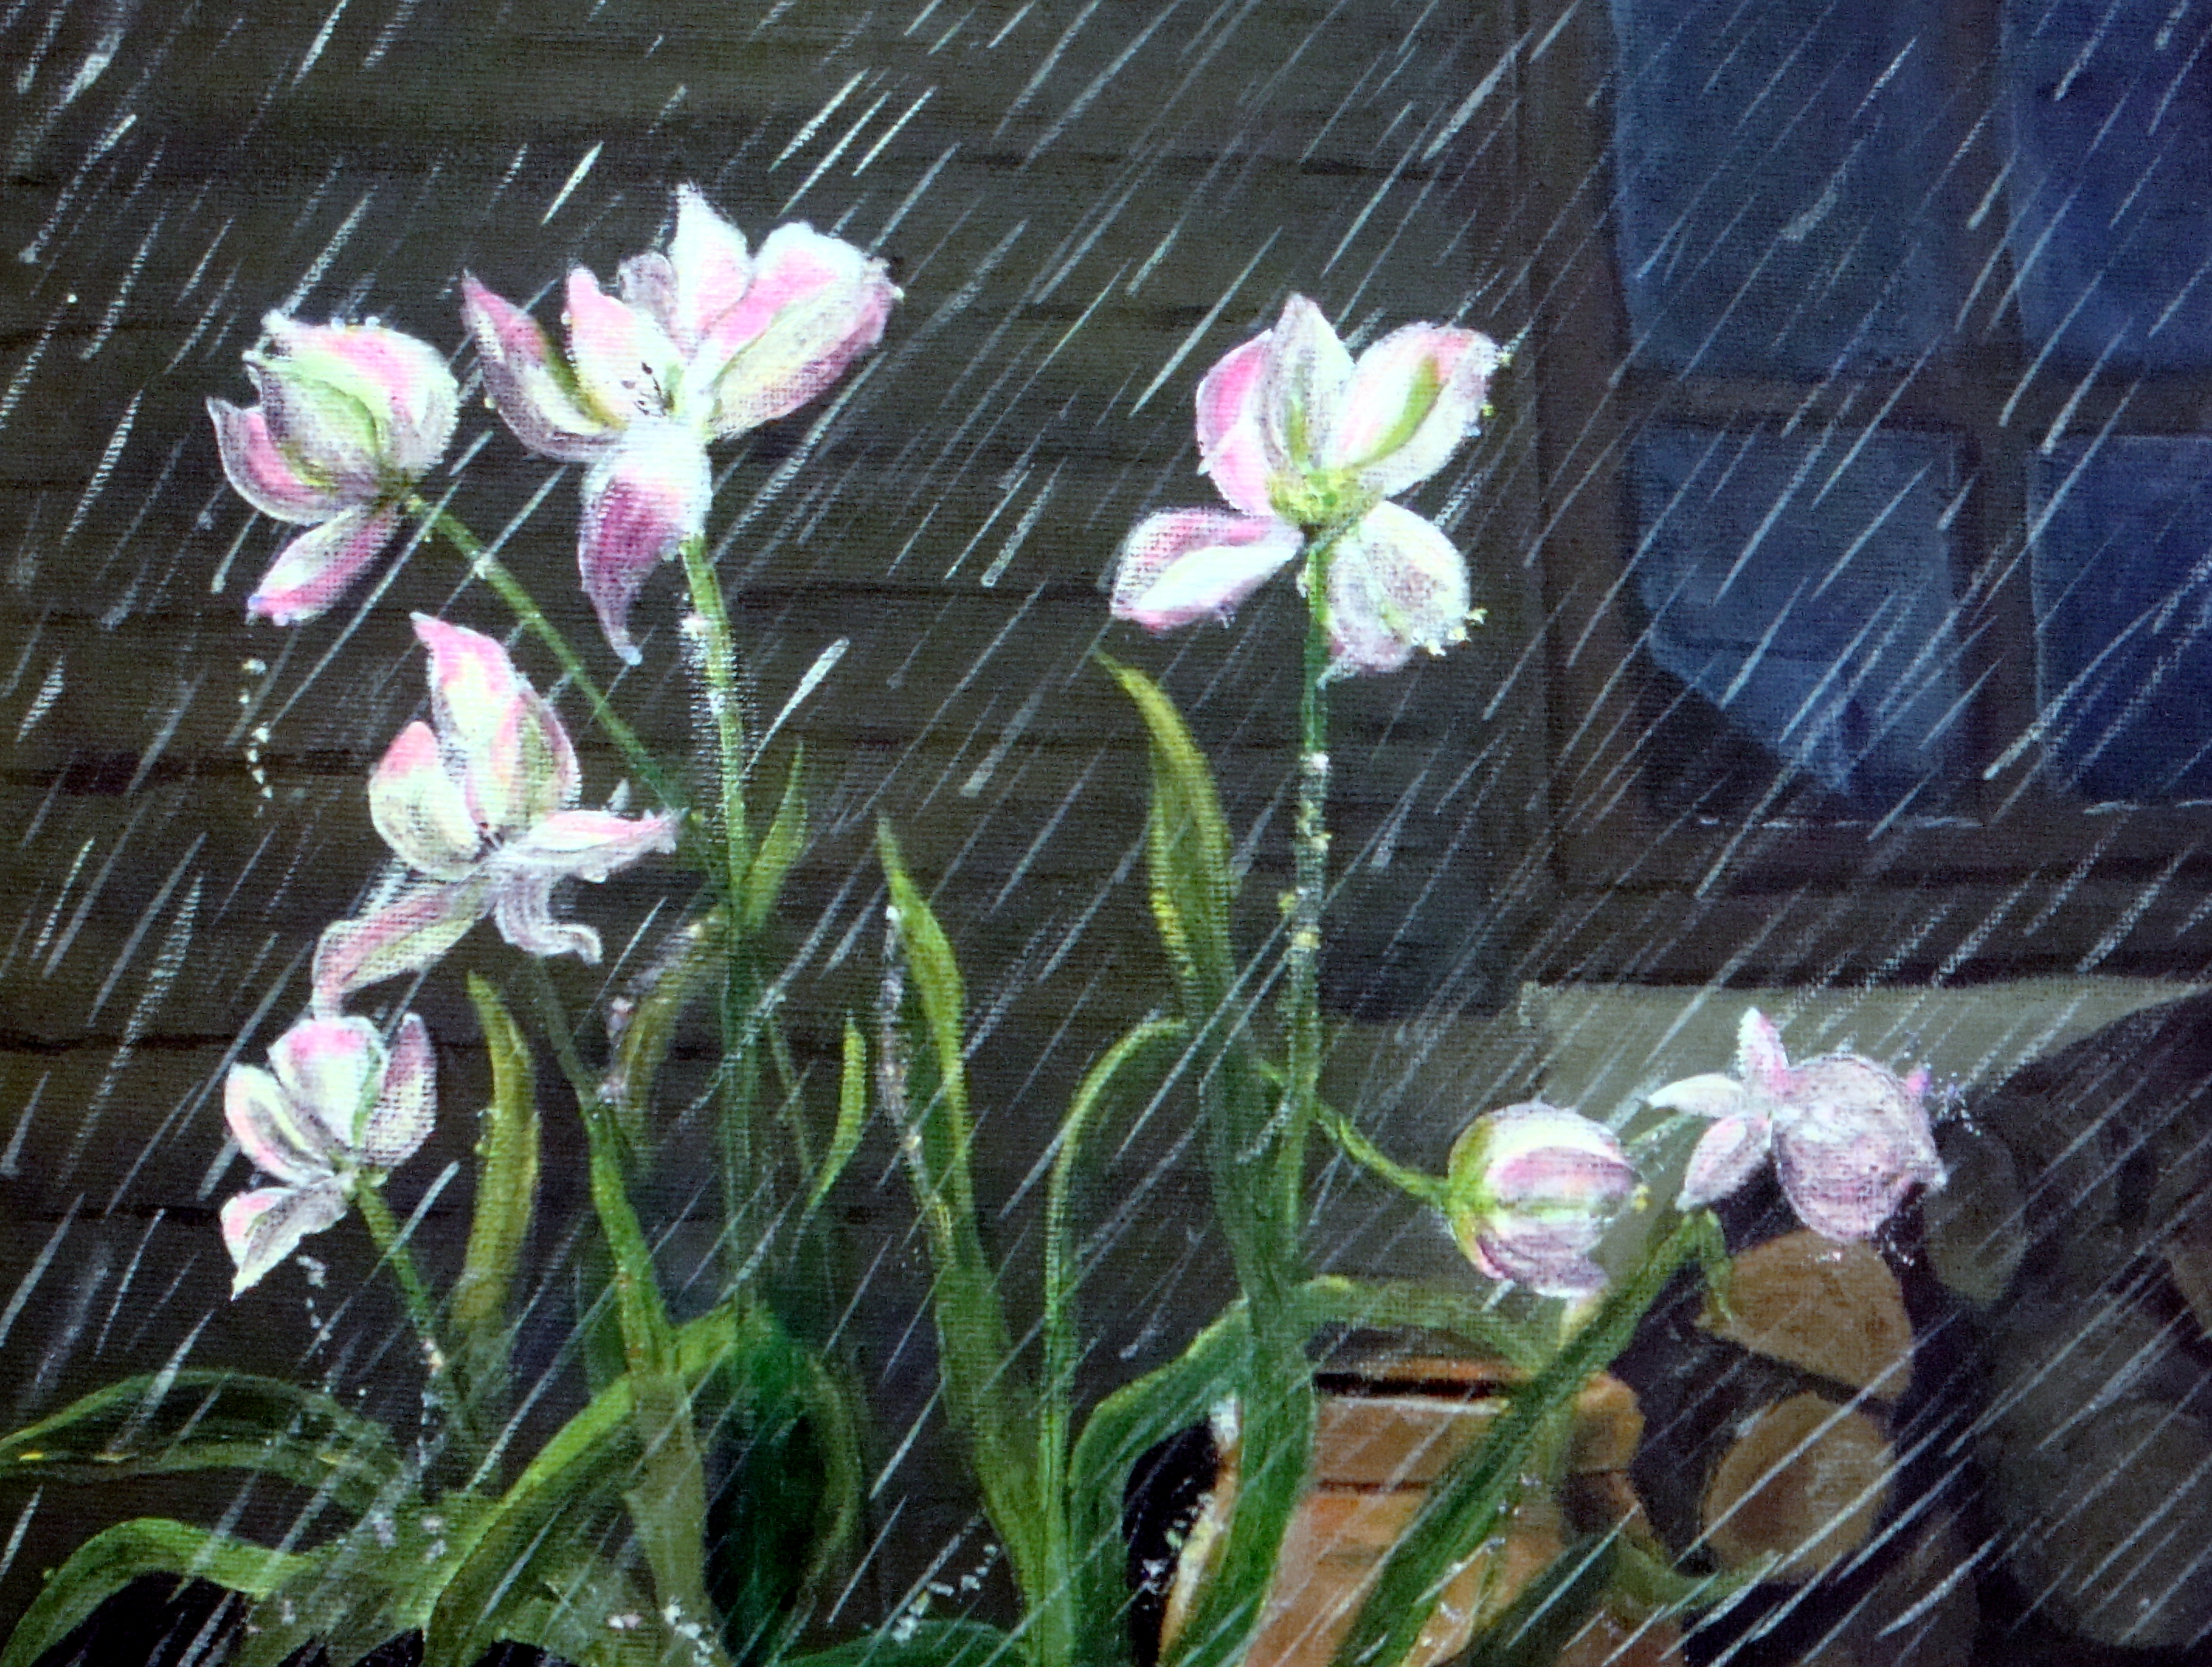 Flowers In The Rain Wallpapers High Quality Download Free